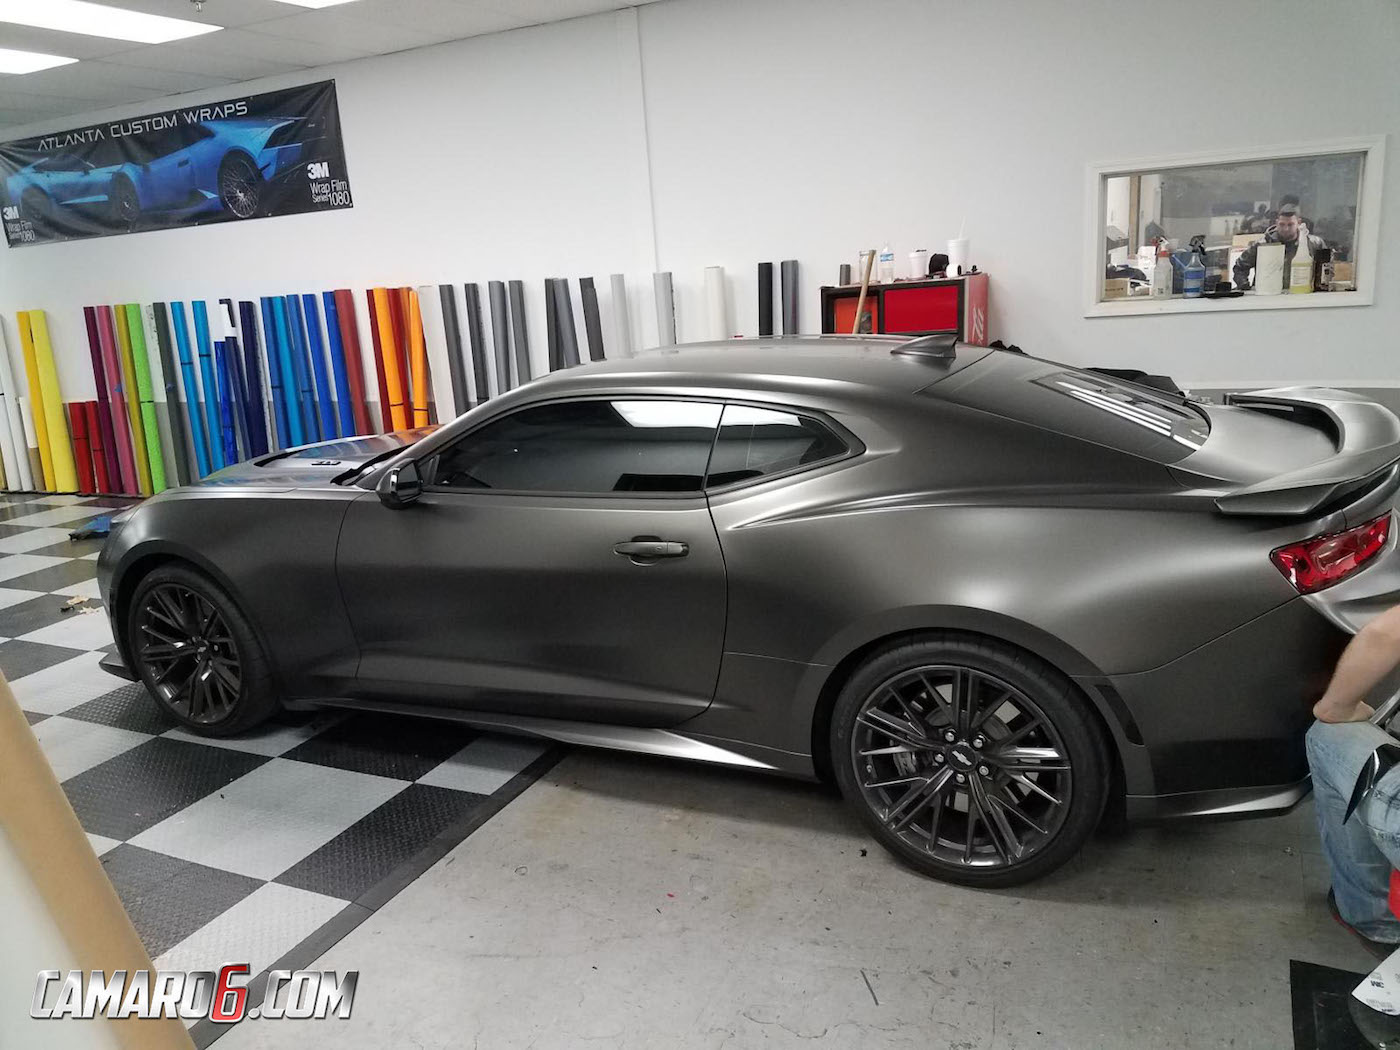 2017 Camaro ZL1 Gets Satin Nero Wrap, Extreme Window Tint for Murdered ...